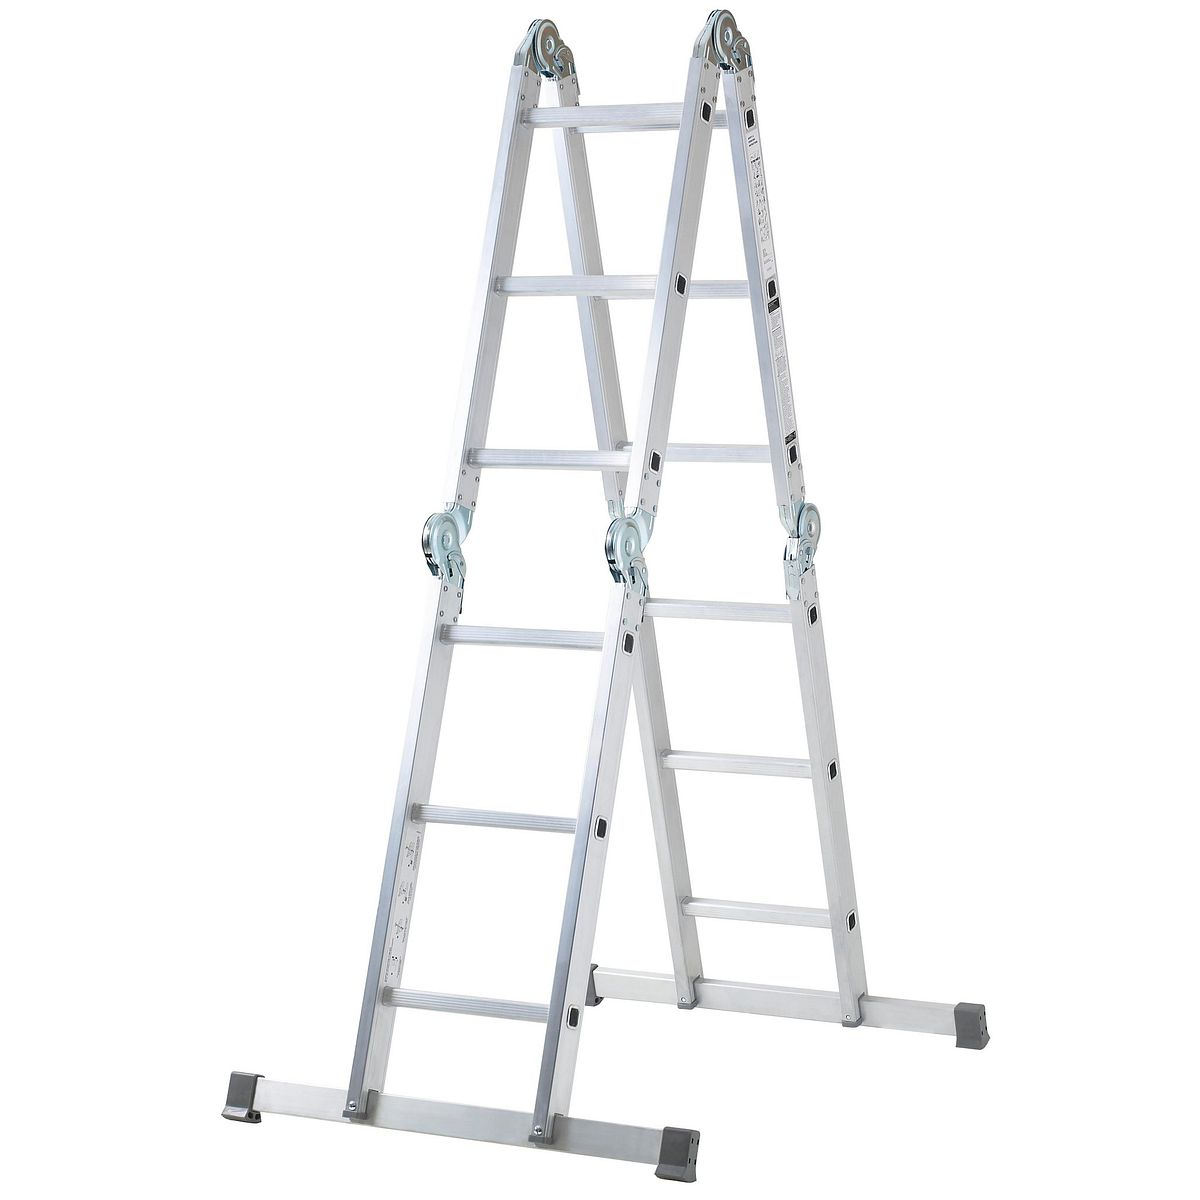 75010 combination ladders werner eu